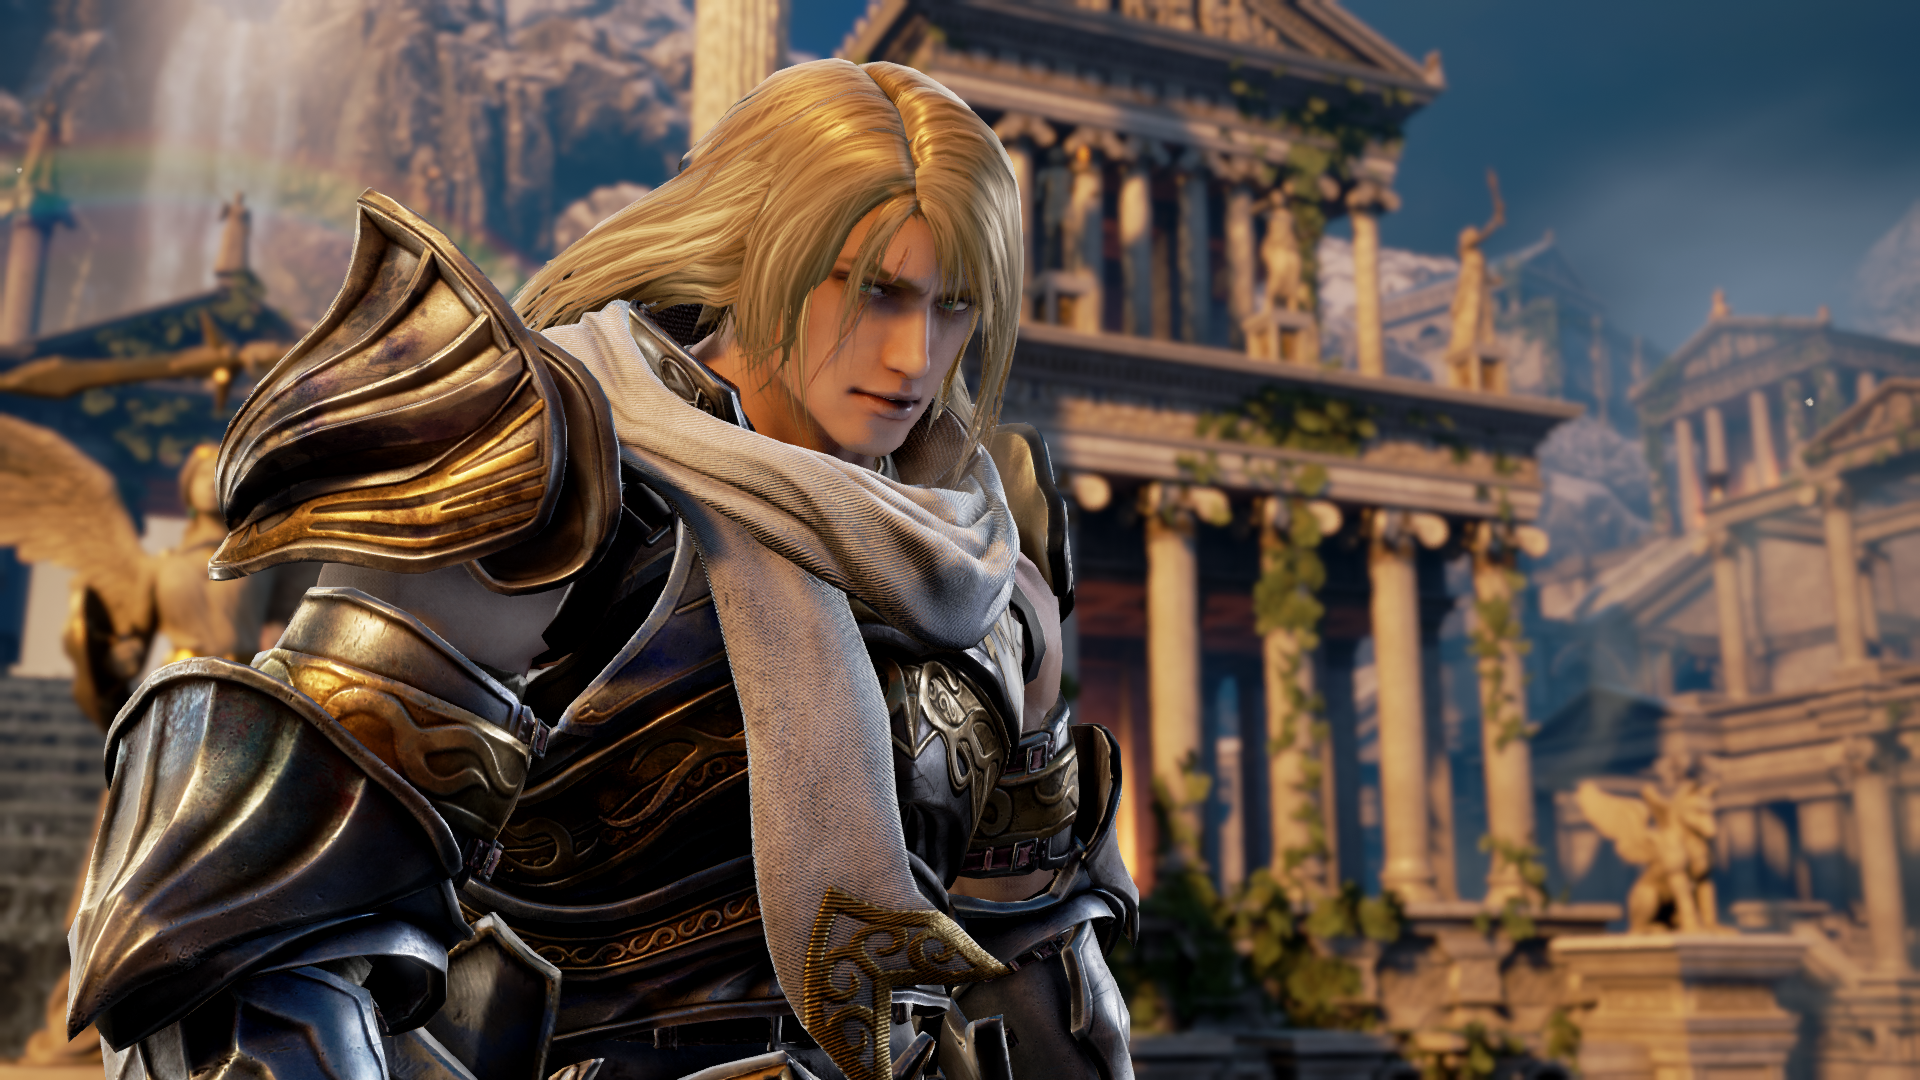 Siegfried is joining the Soulcalibur VI roster Dot